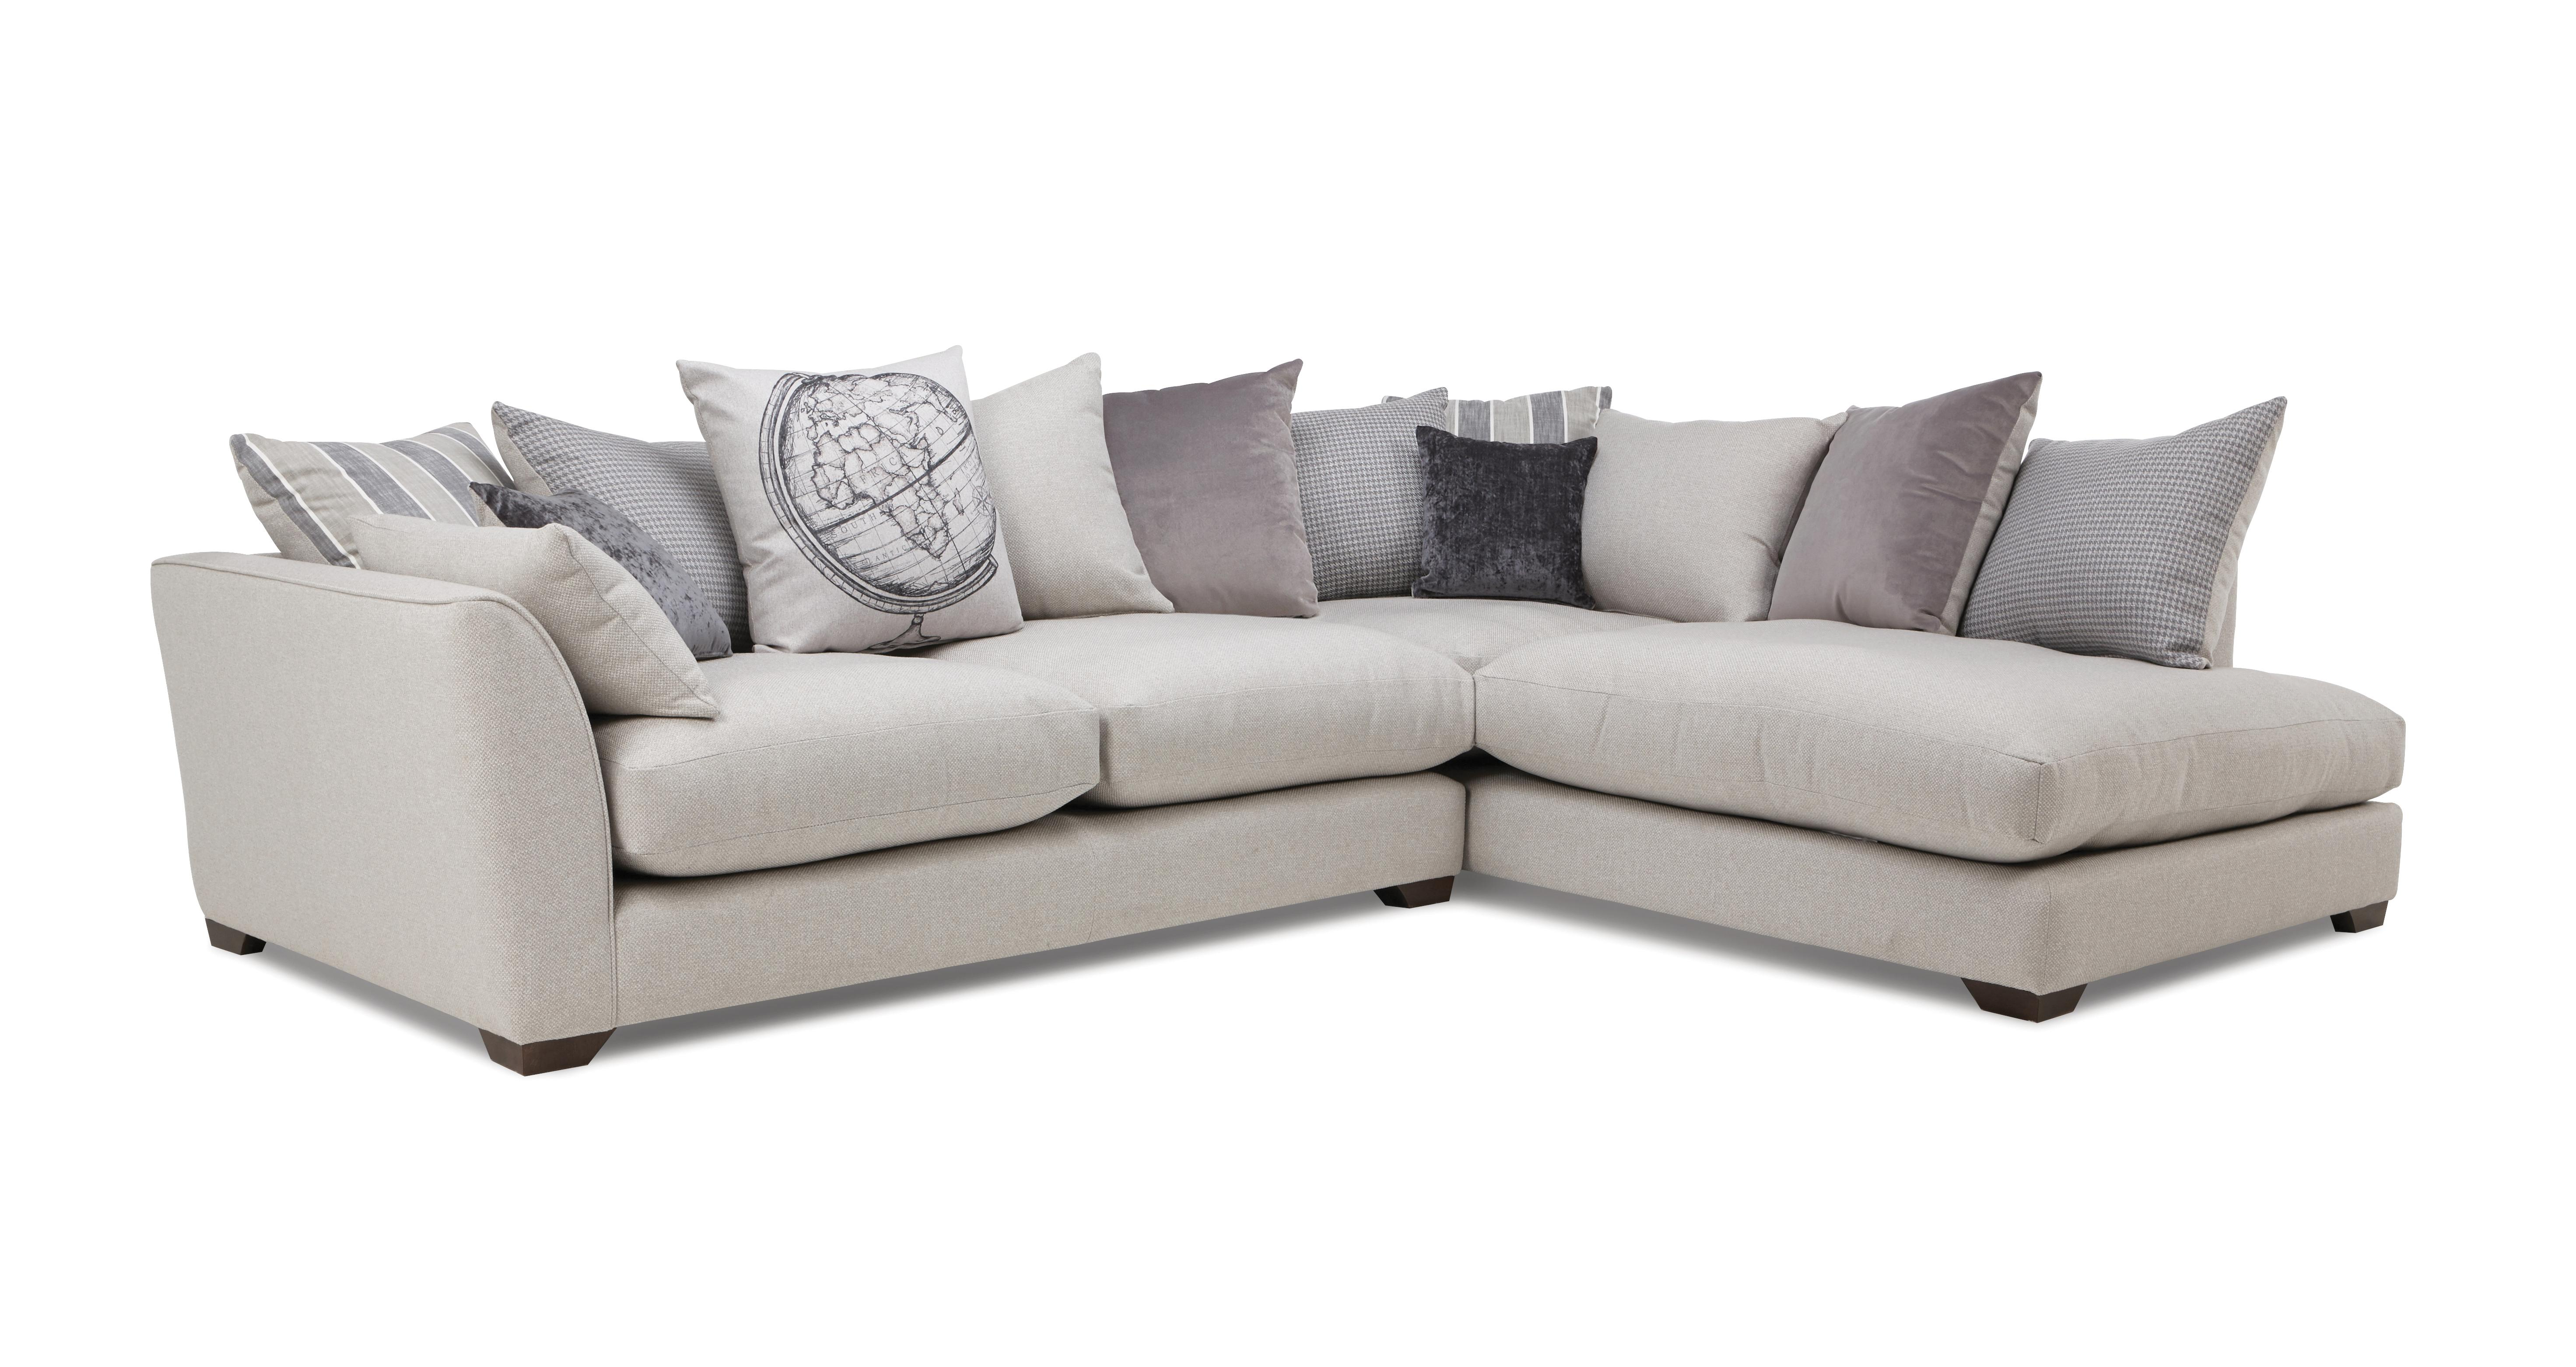 sofa clearance sydney white wicker bed dfs brokeasshome